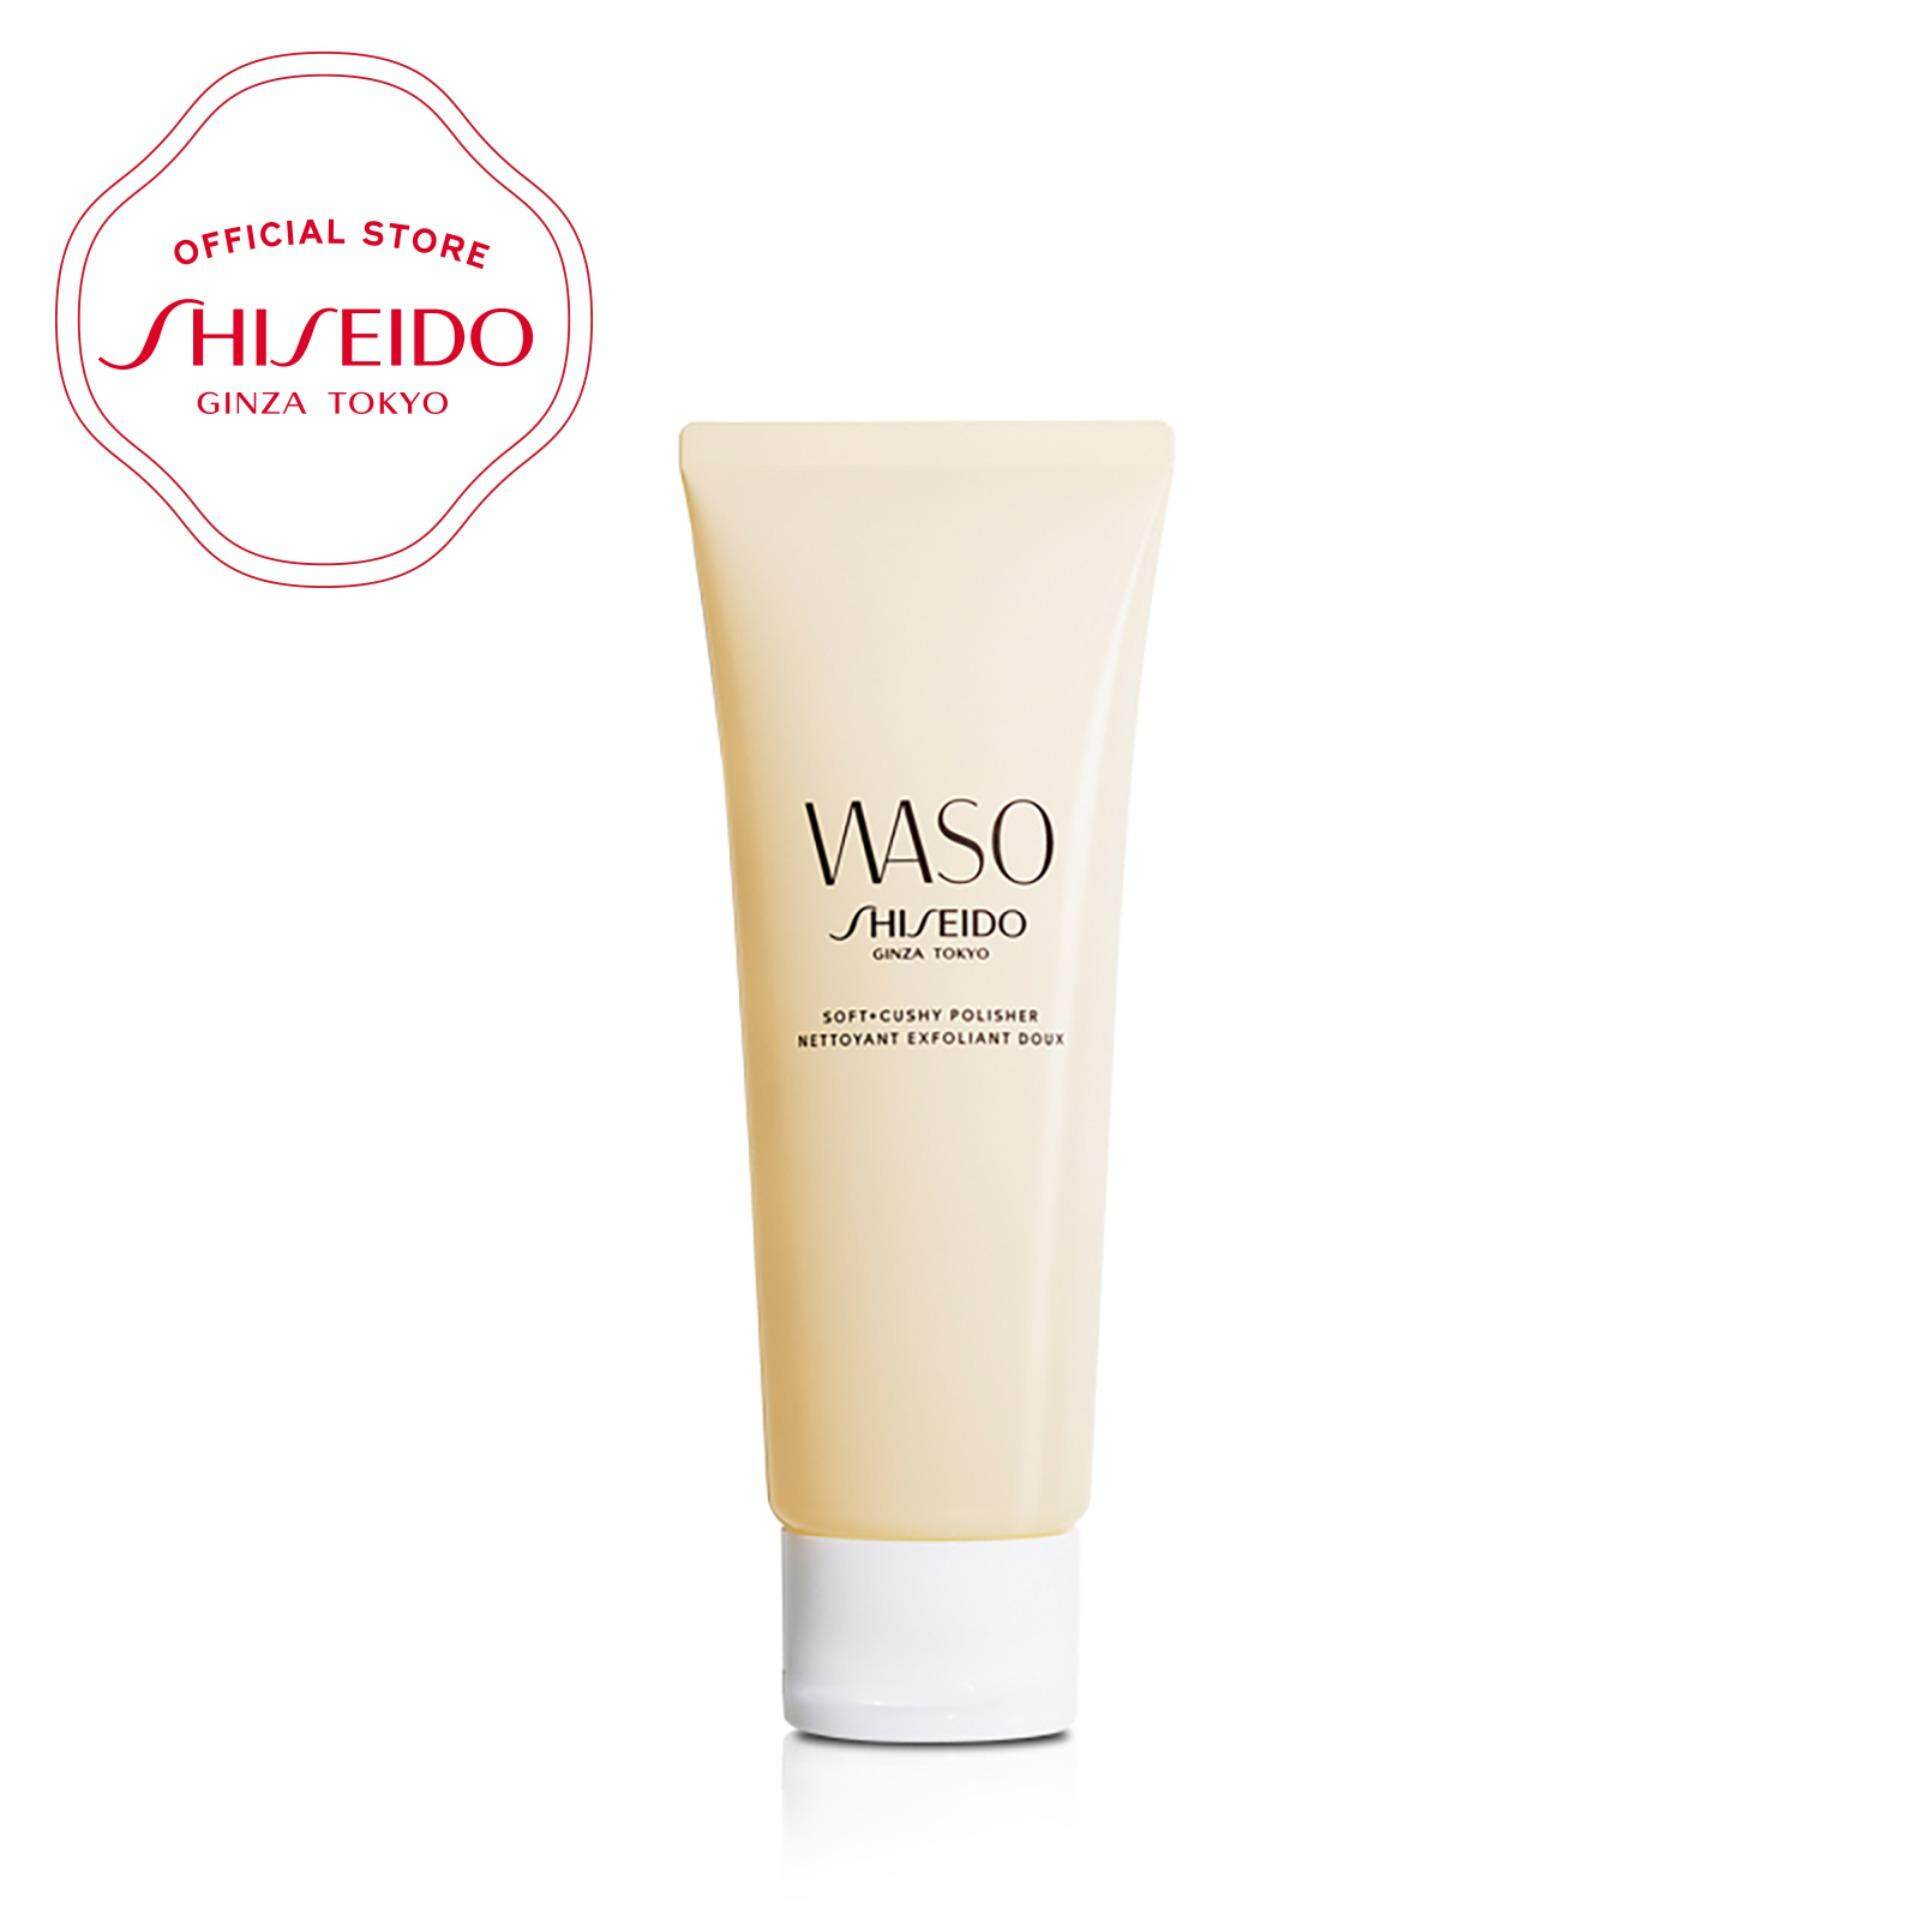 Shiseido Health Beauty Skincare Price In Malaysia Best Vital Perfection Treatment Cleansing Foam 30ml Waso Soft Cushy Polisher 75ml